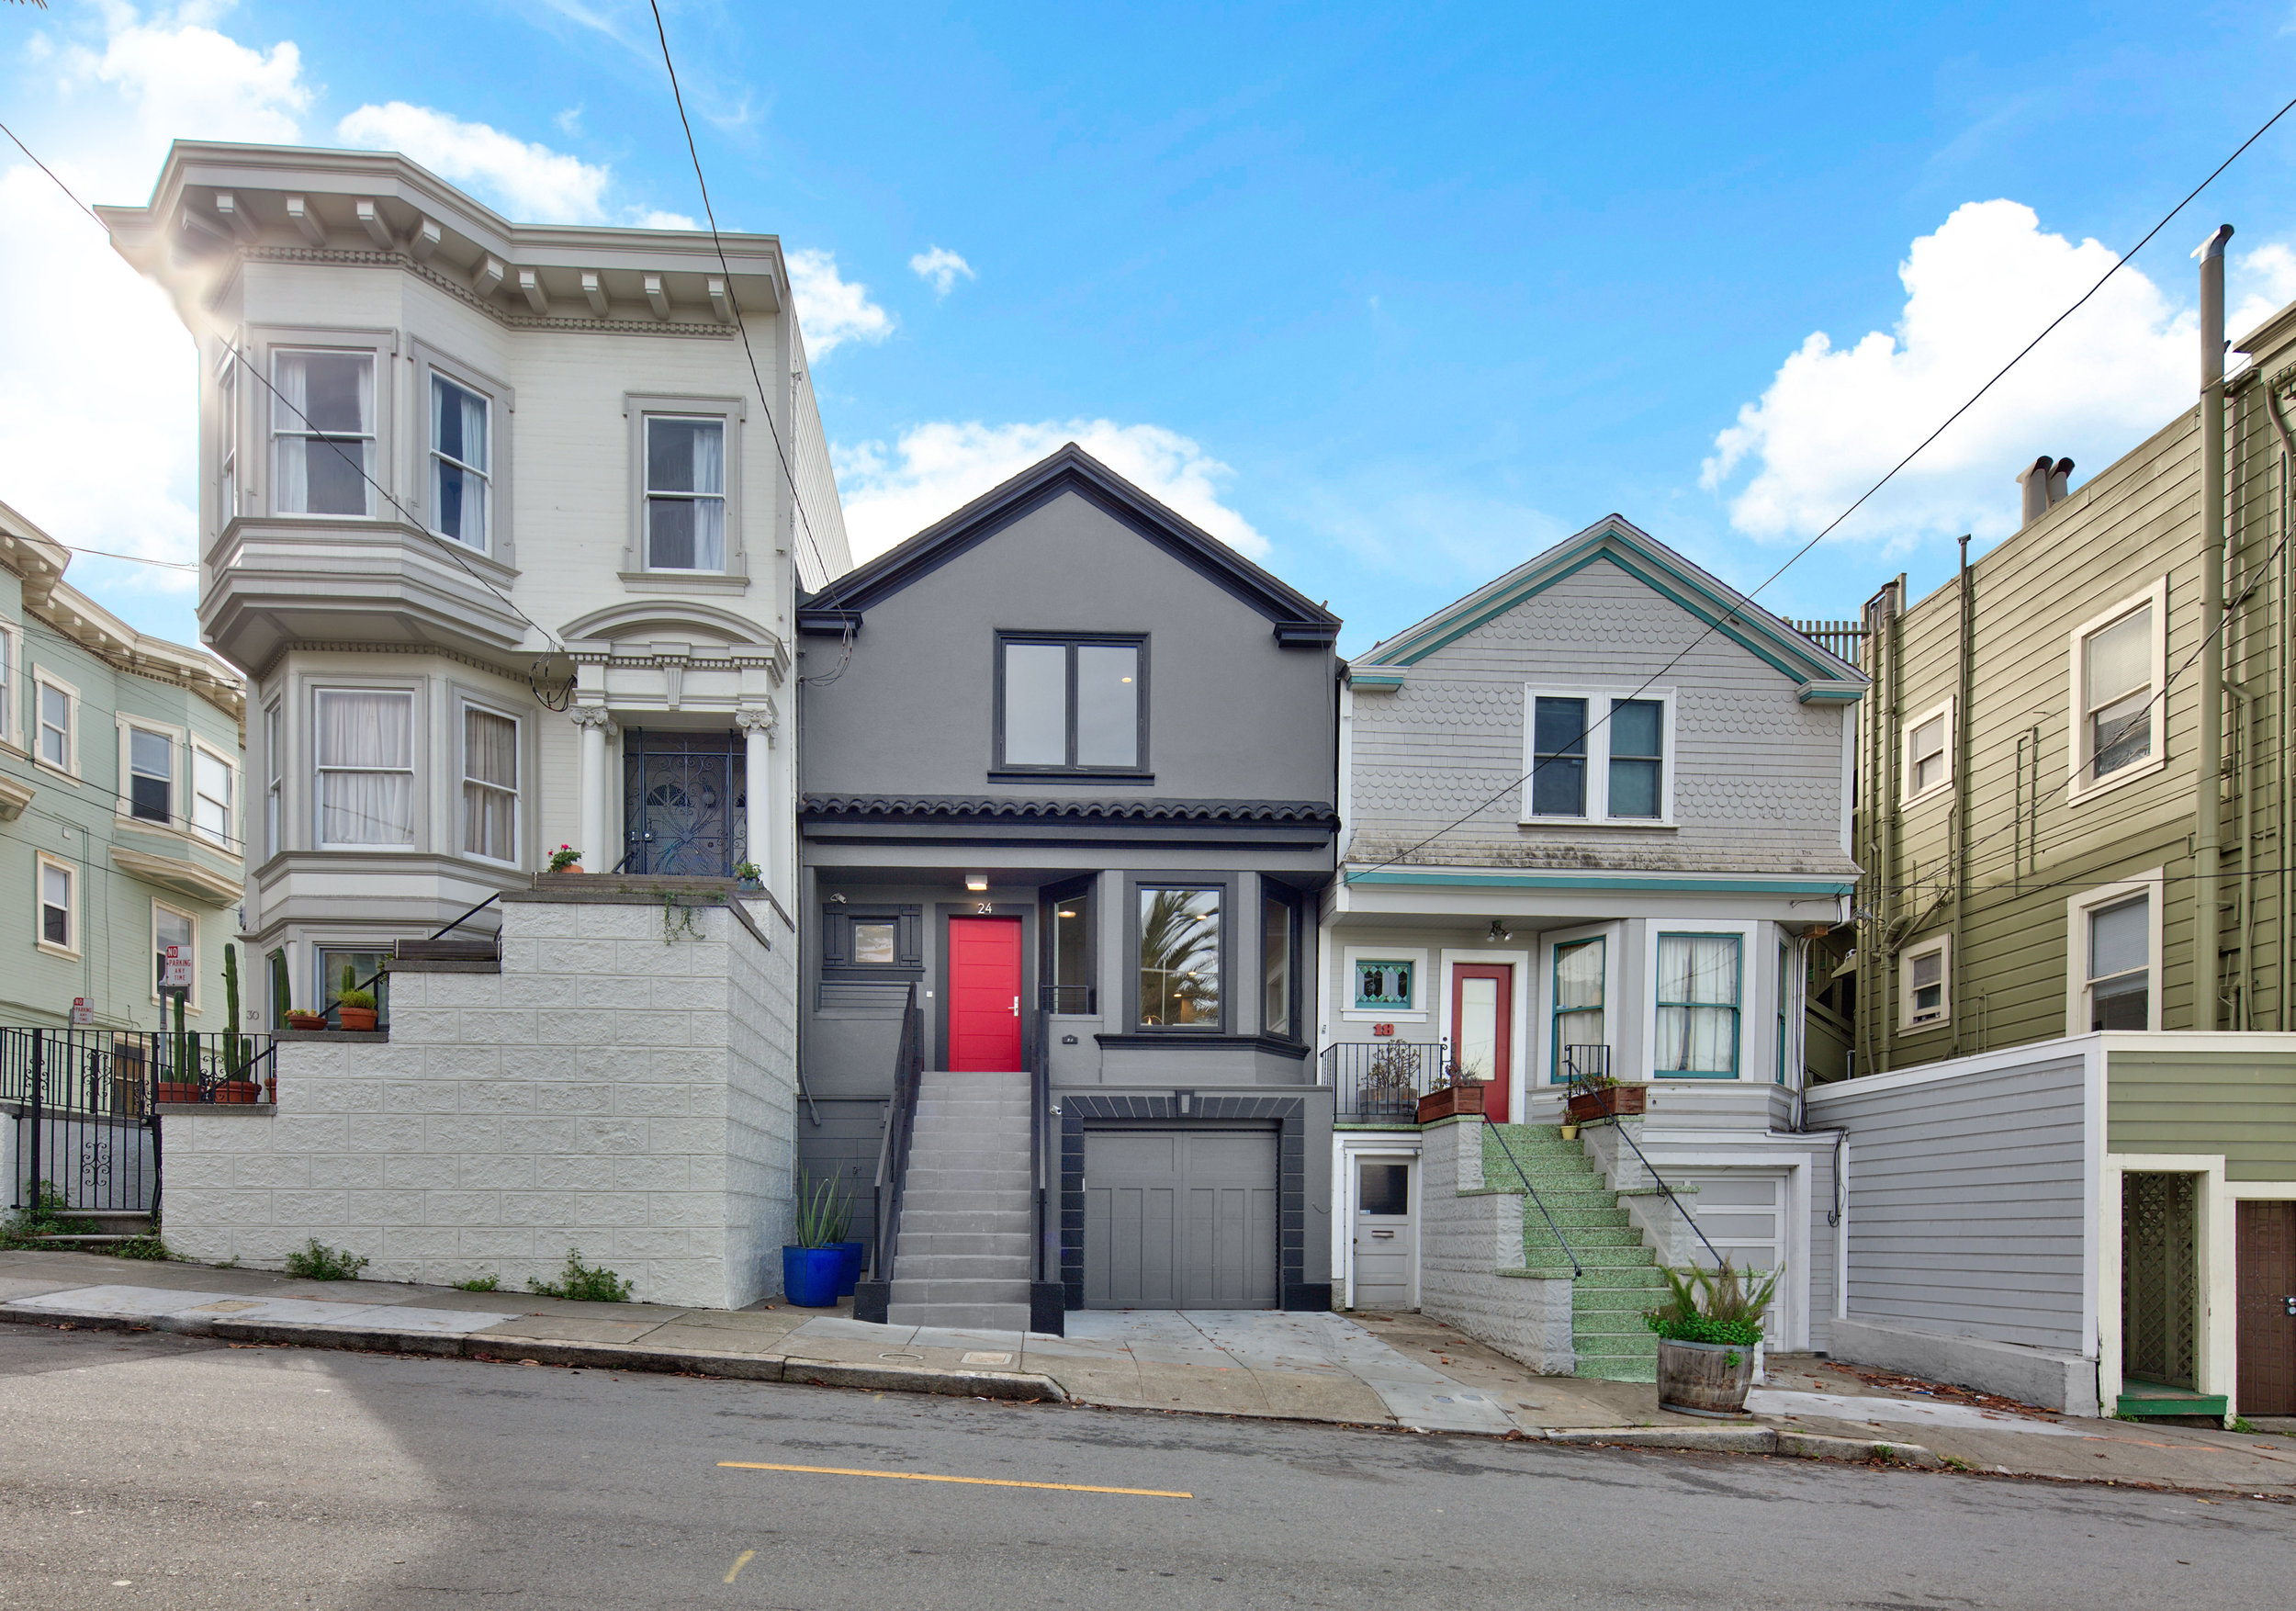 24 FAIR AVE, SAN FRANCISCO, CA